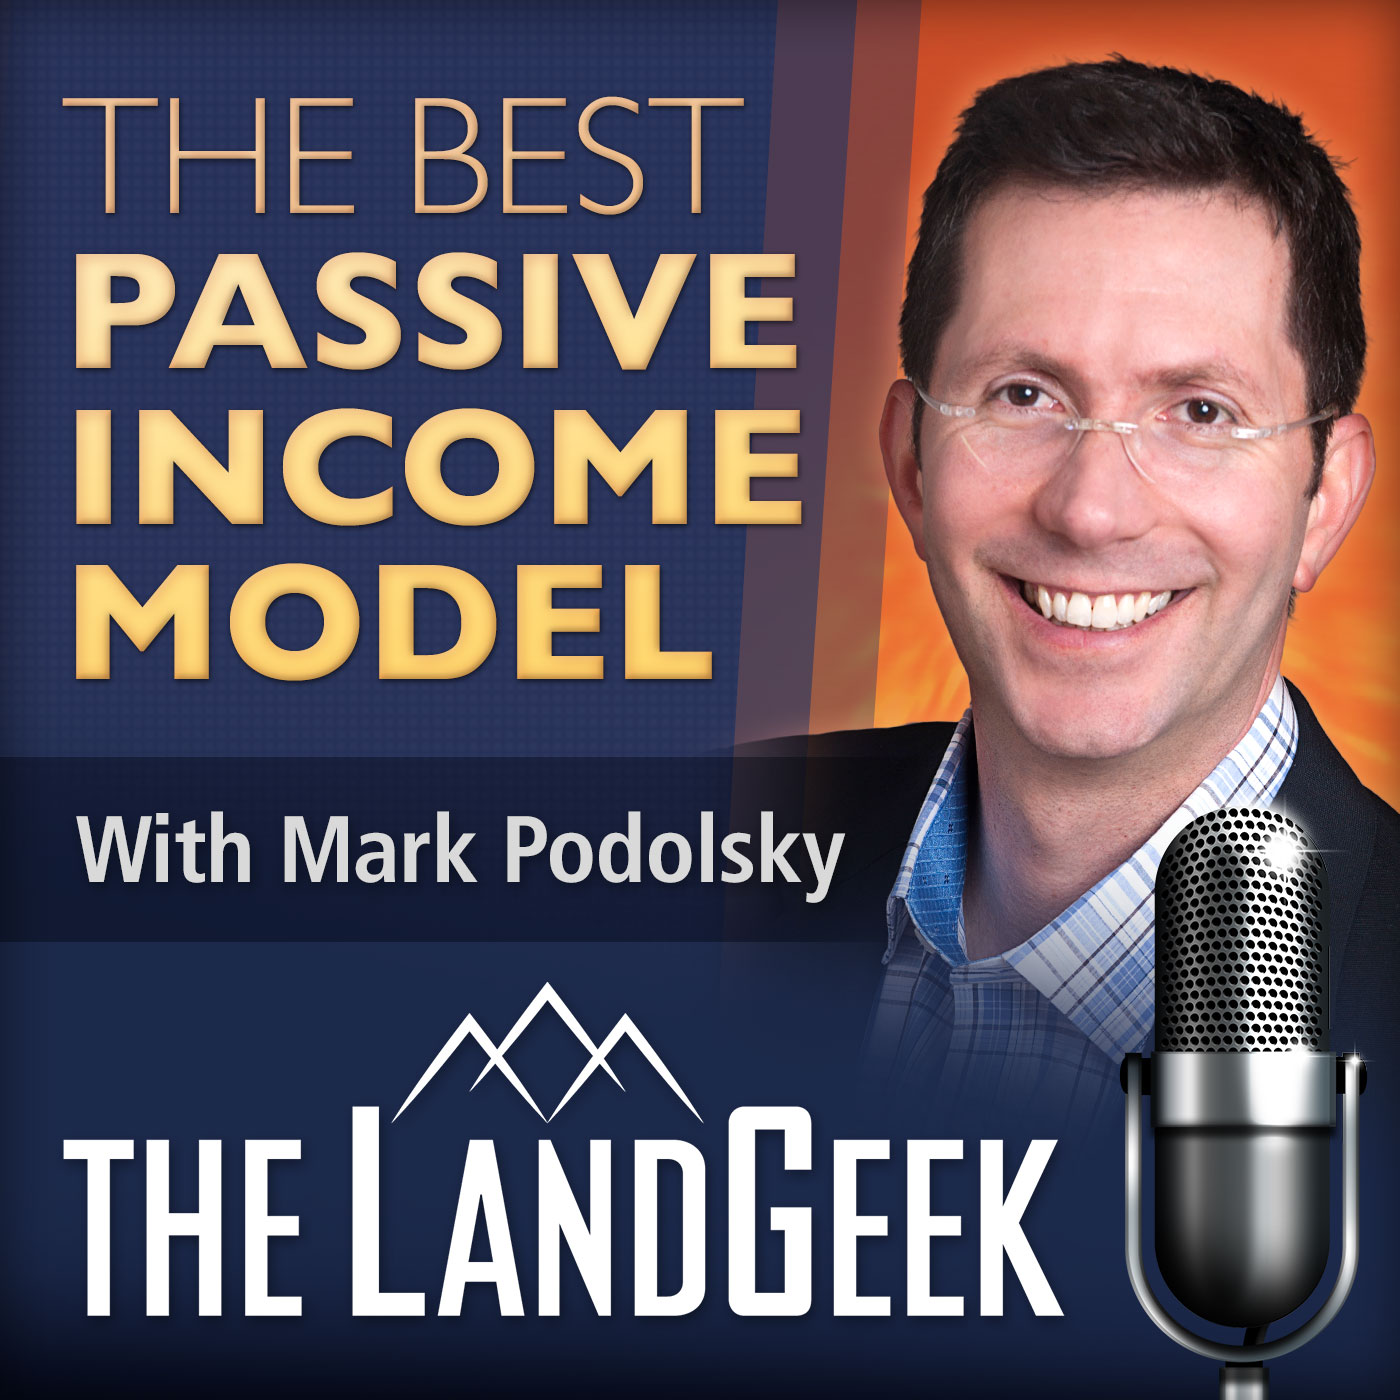 The Best Passive Income Model Podcast show art